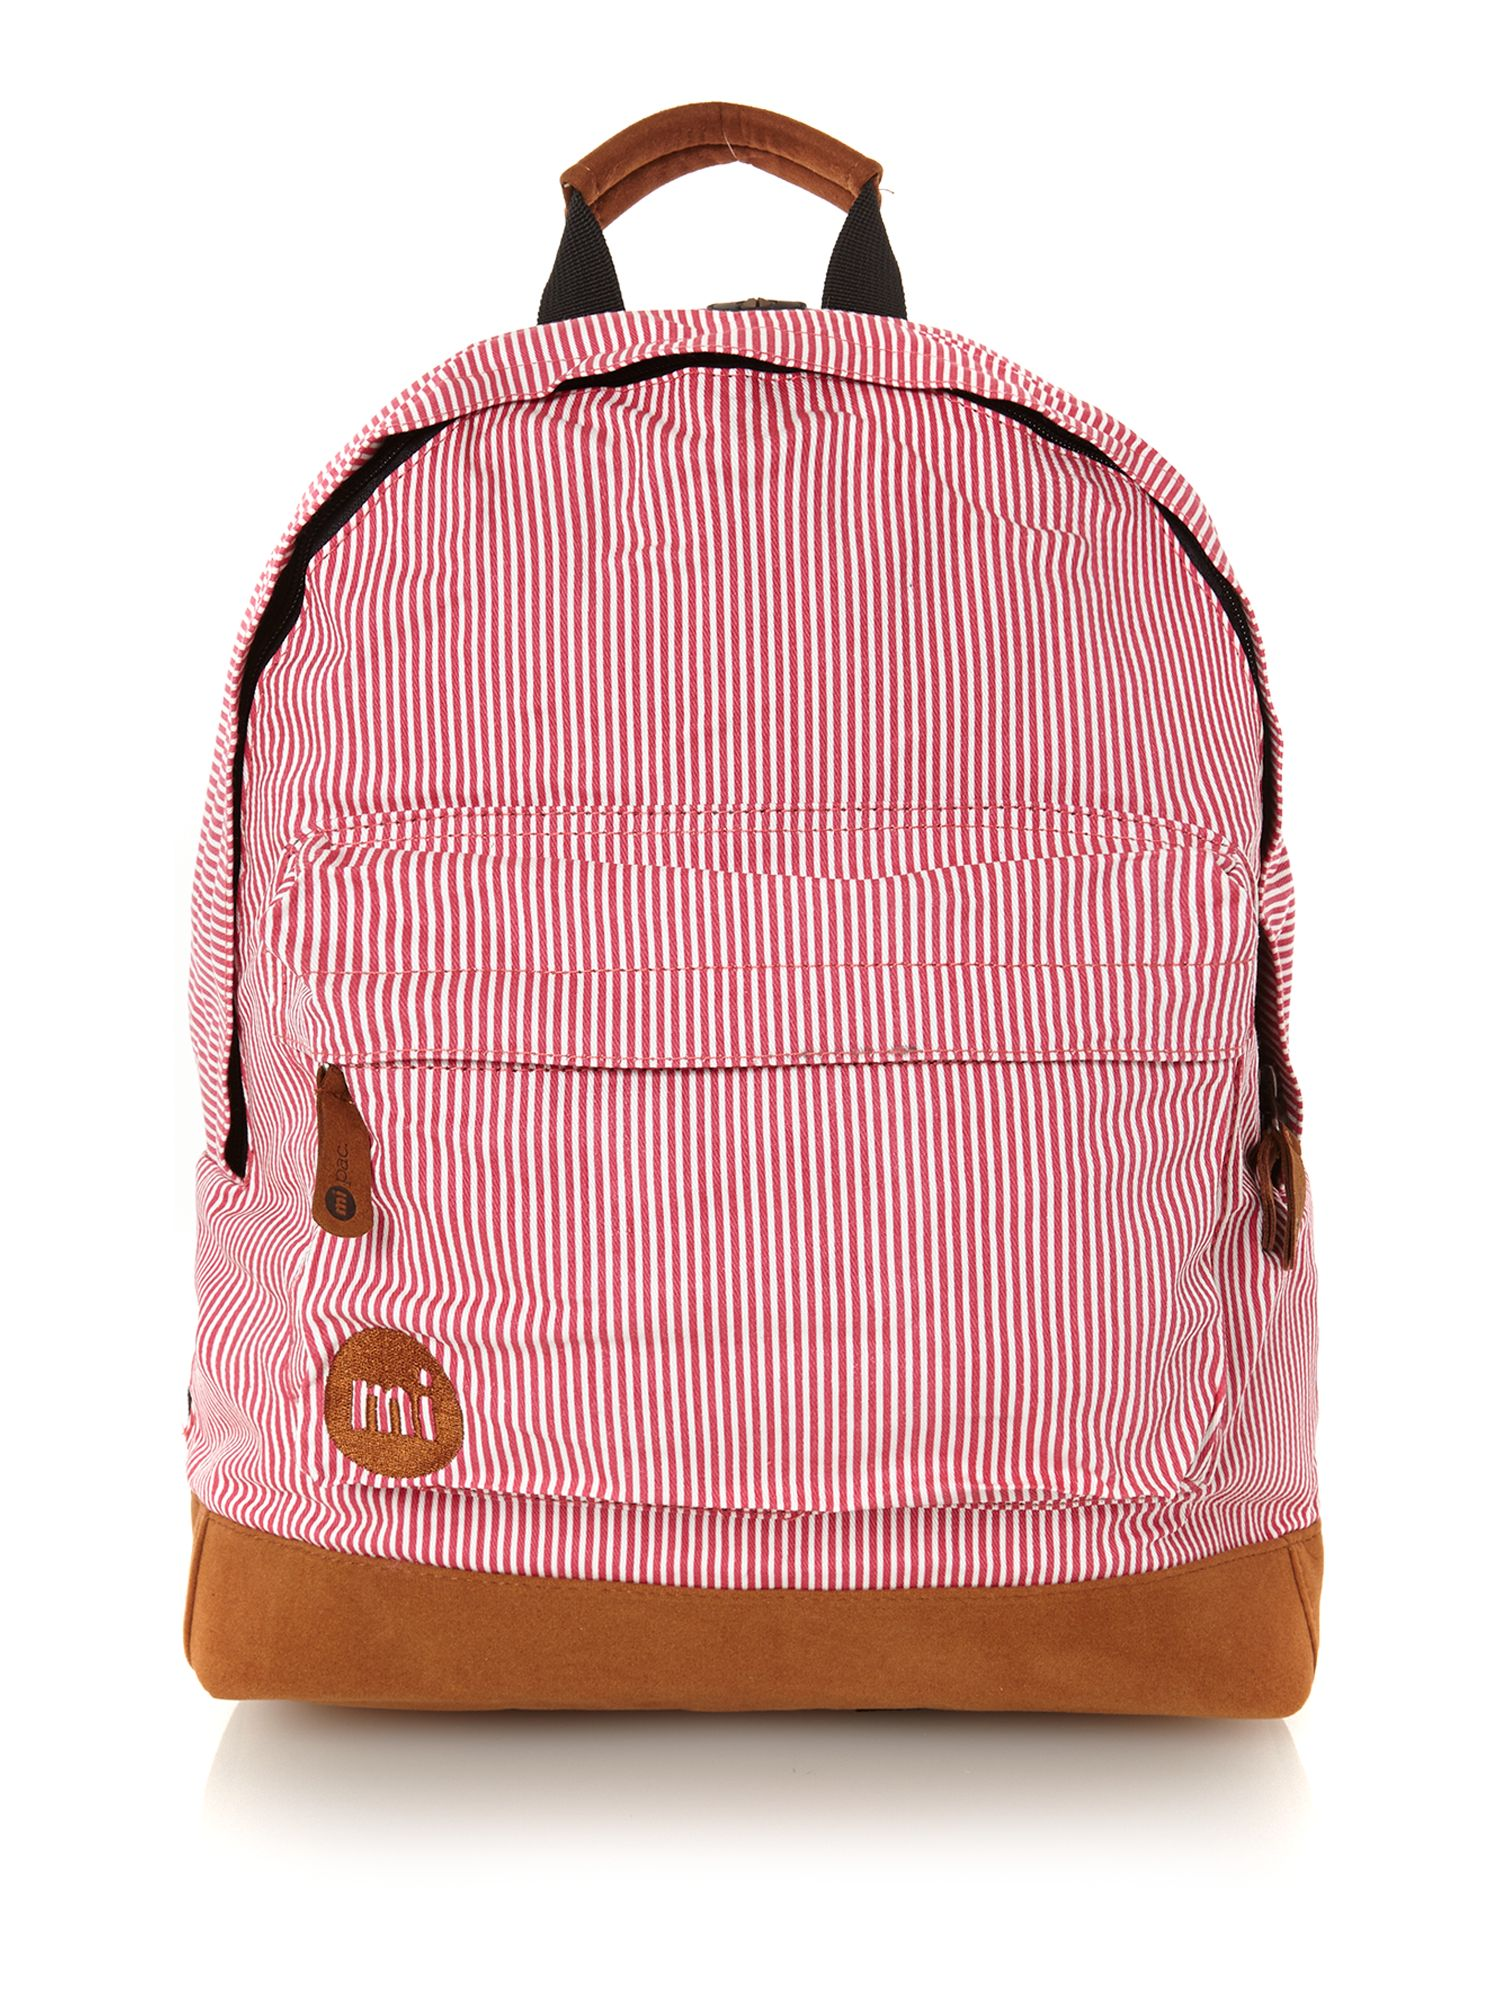 Candy stripe backpack